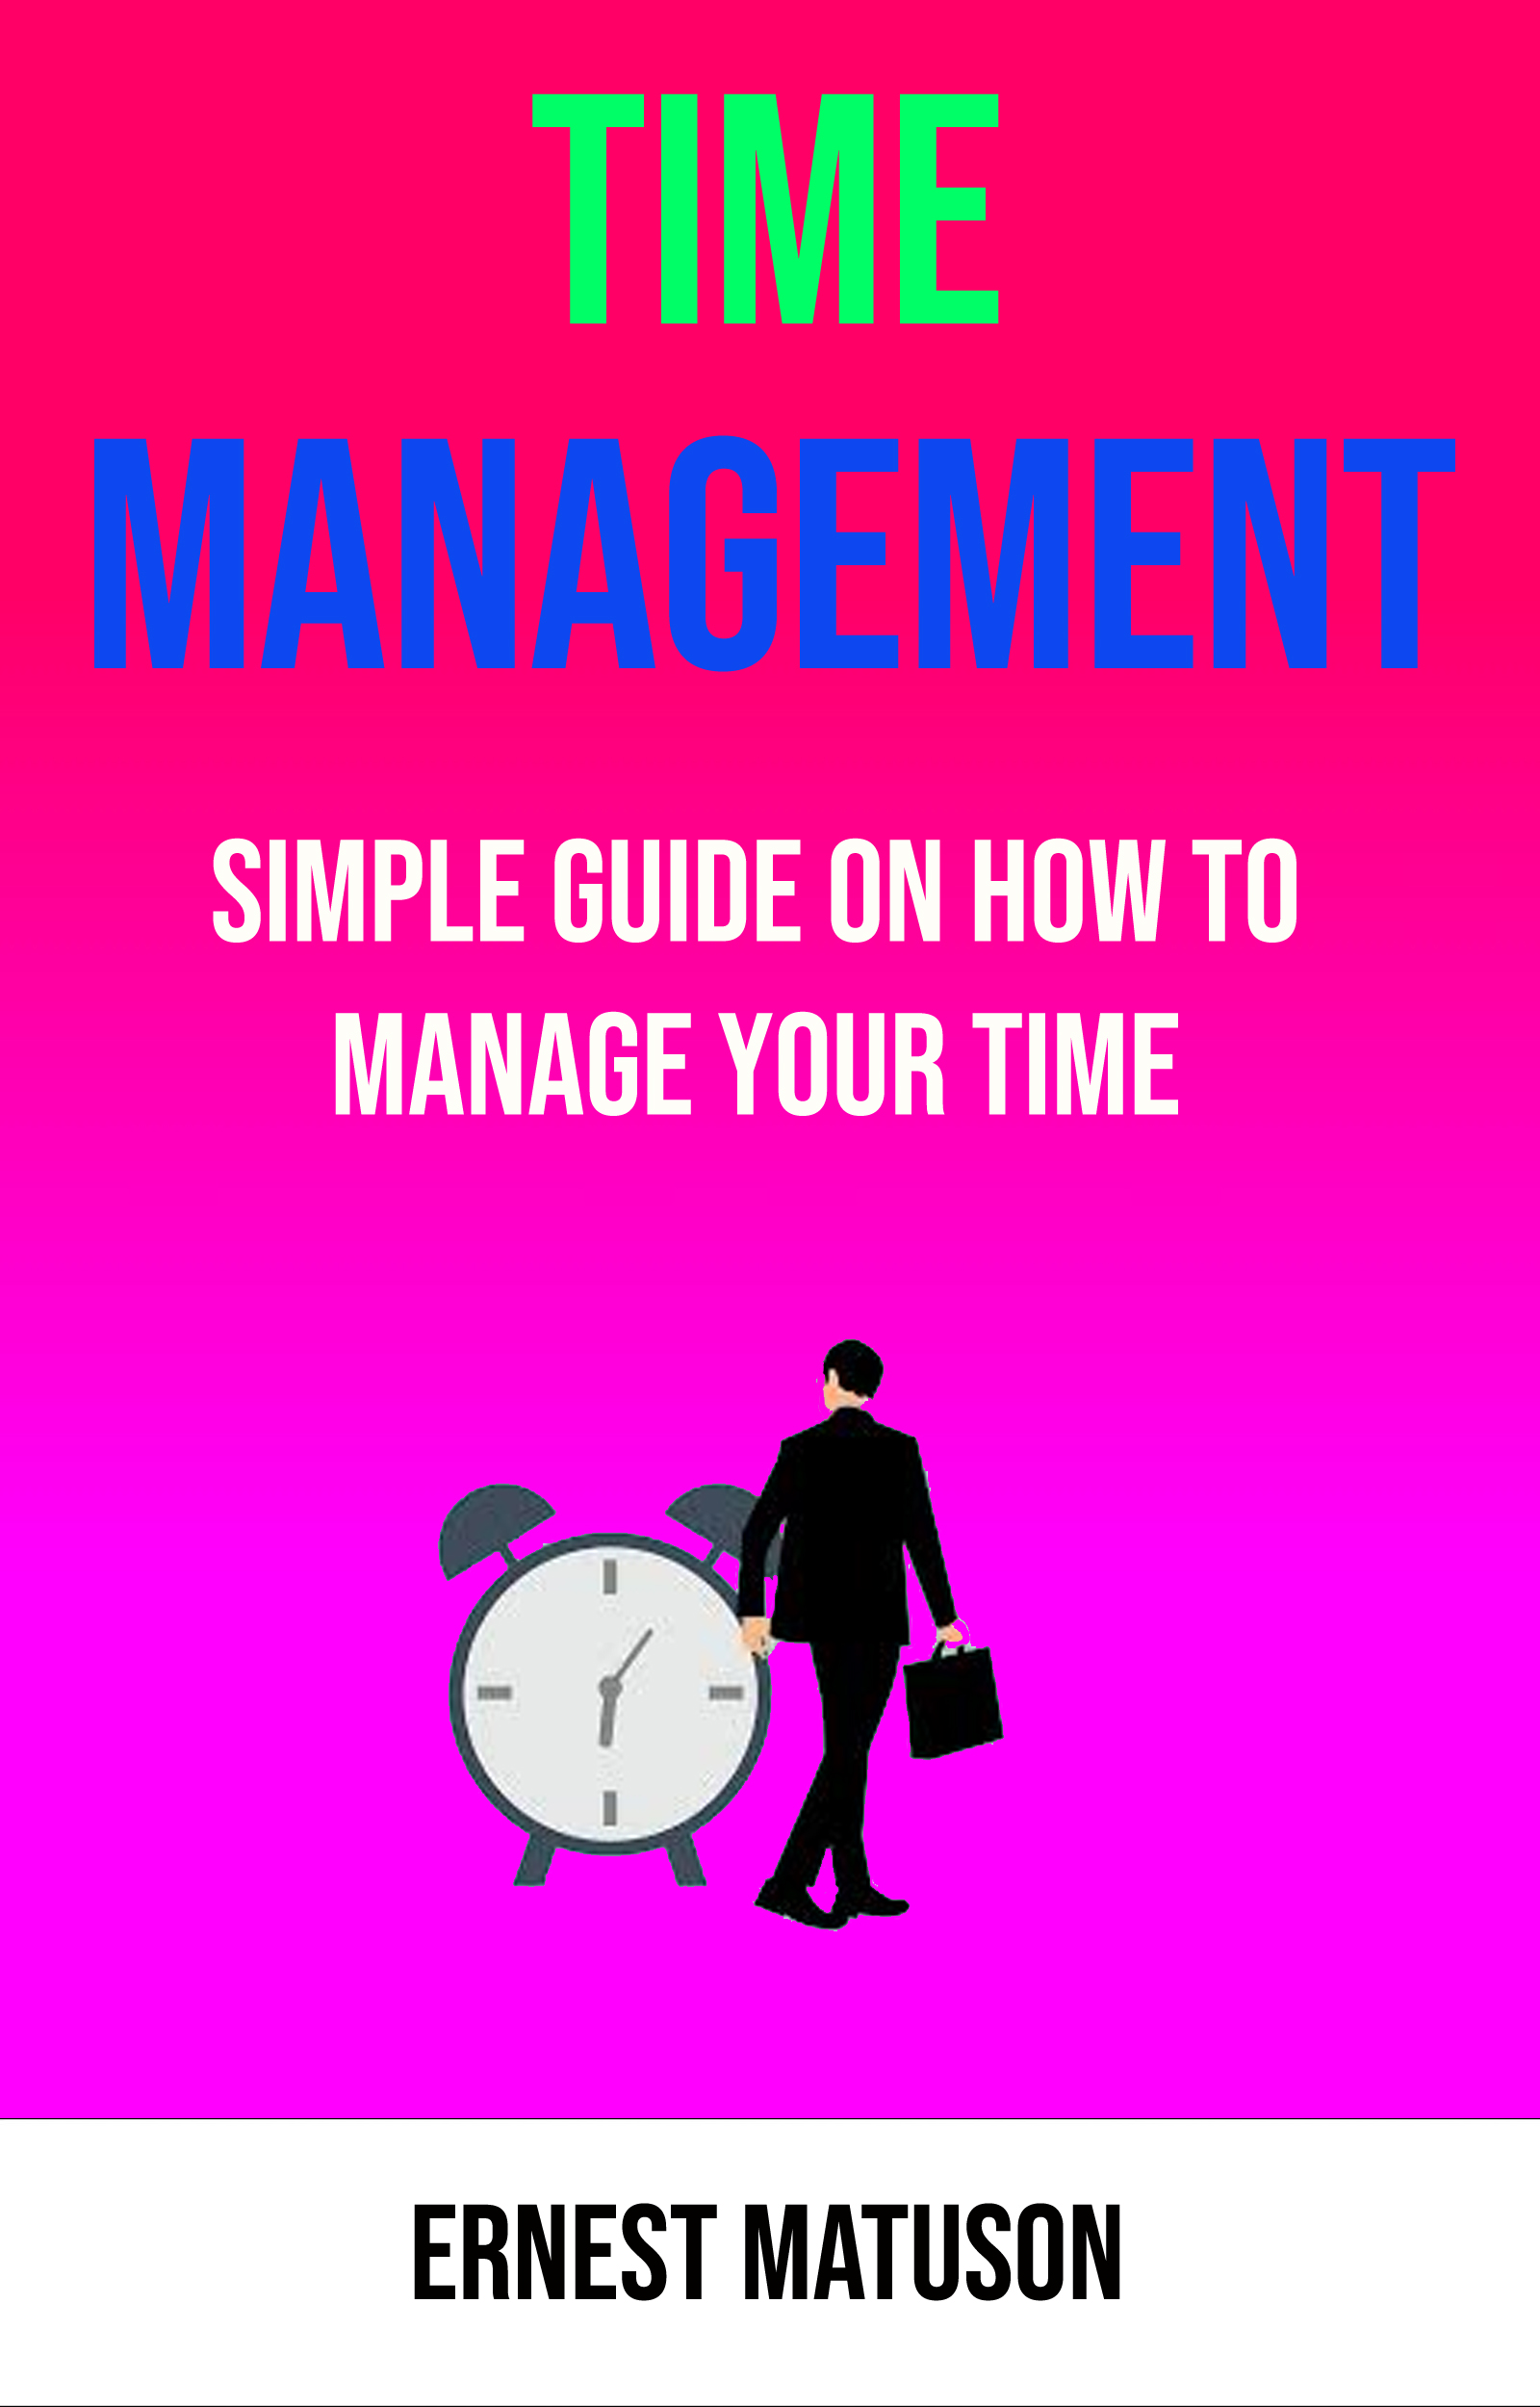 Time management: simple guide on how to manage your time